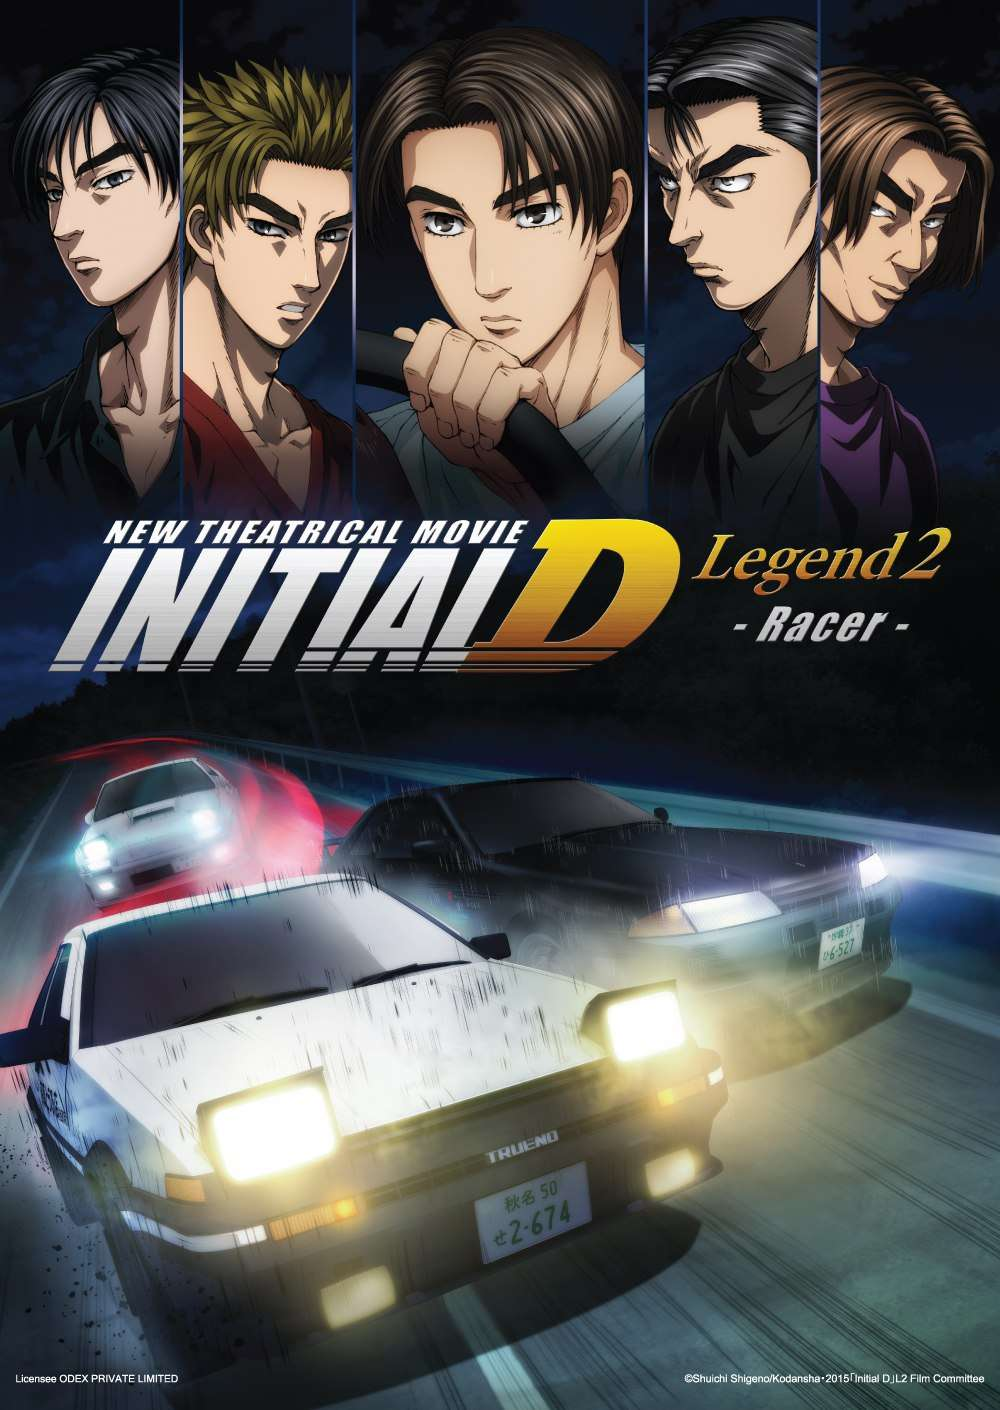 New Initial D the Movie: Legend 2 - Racer kapak